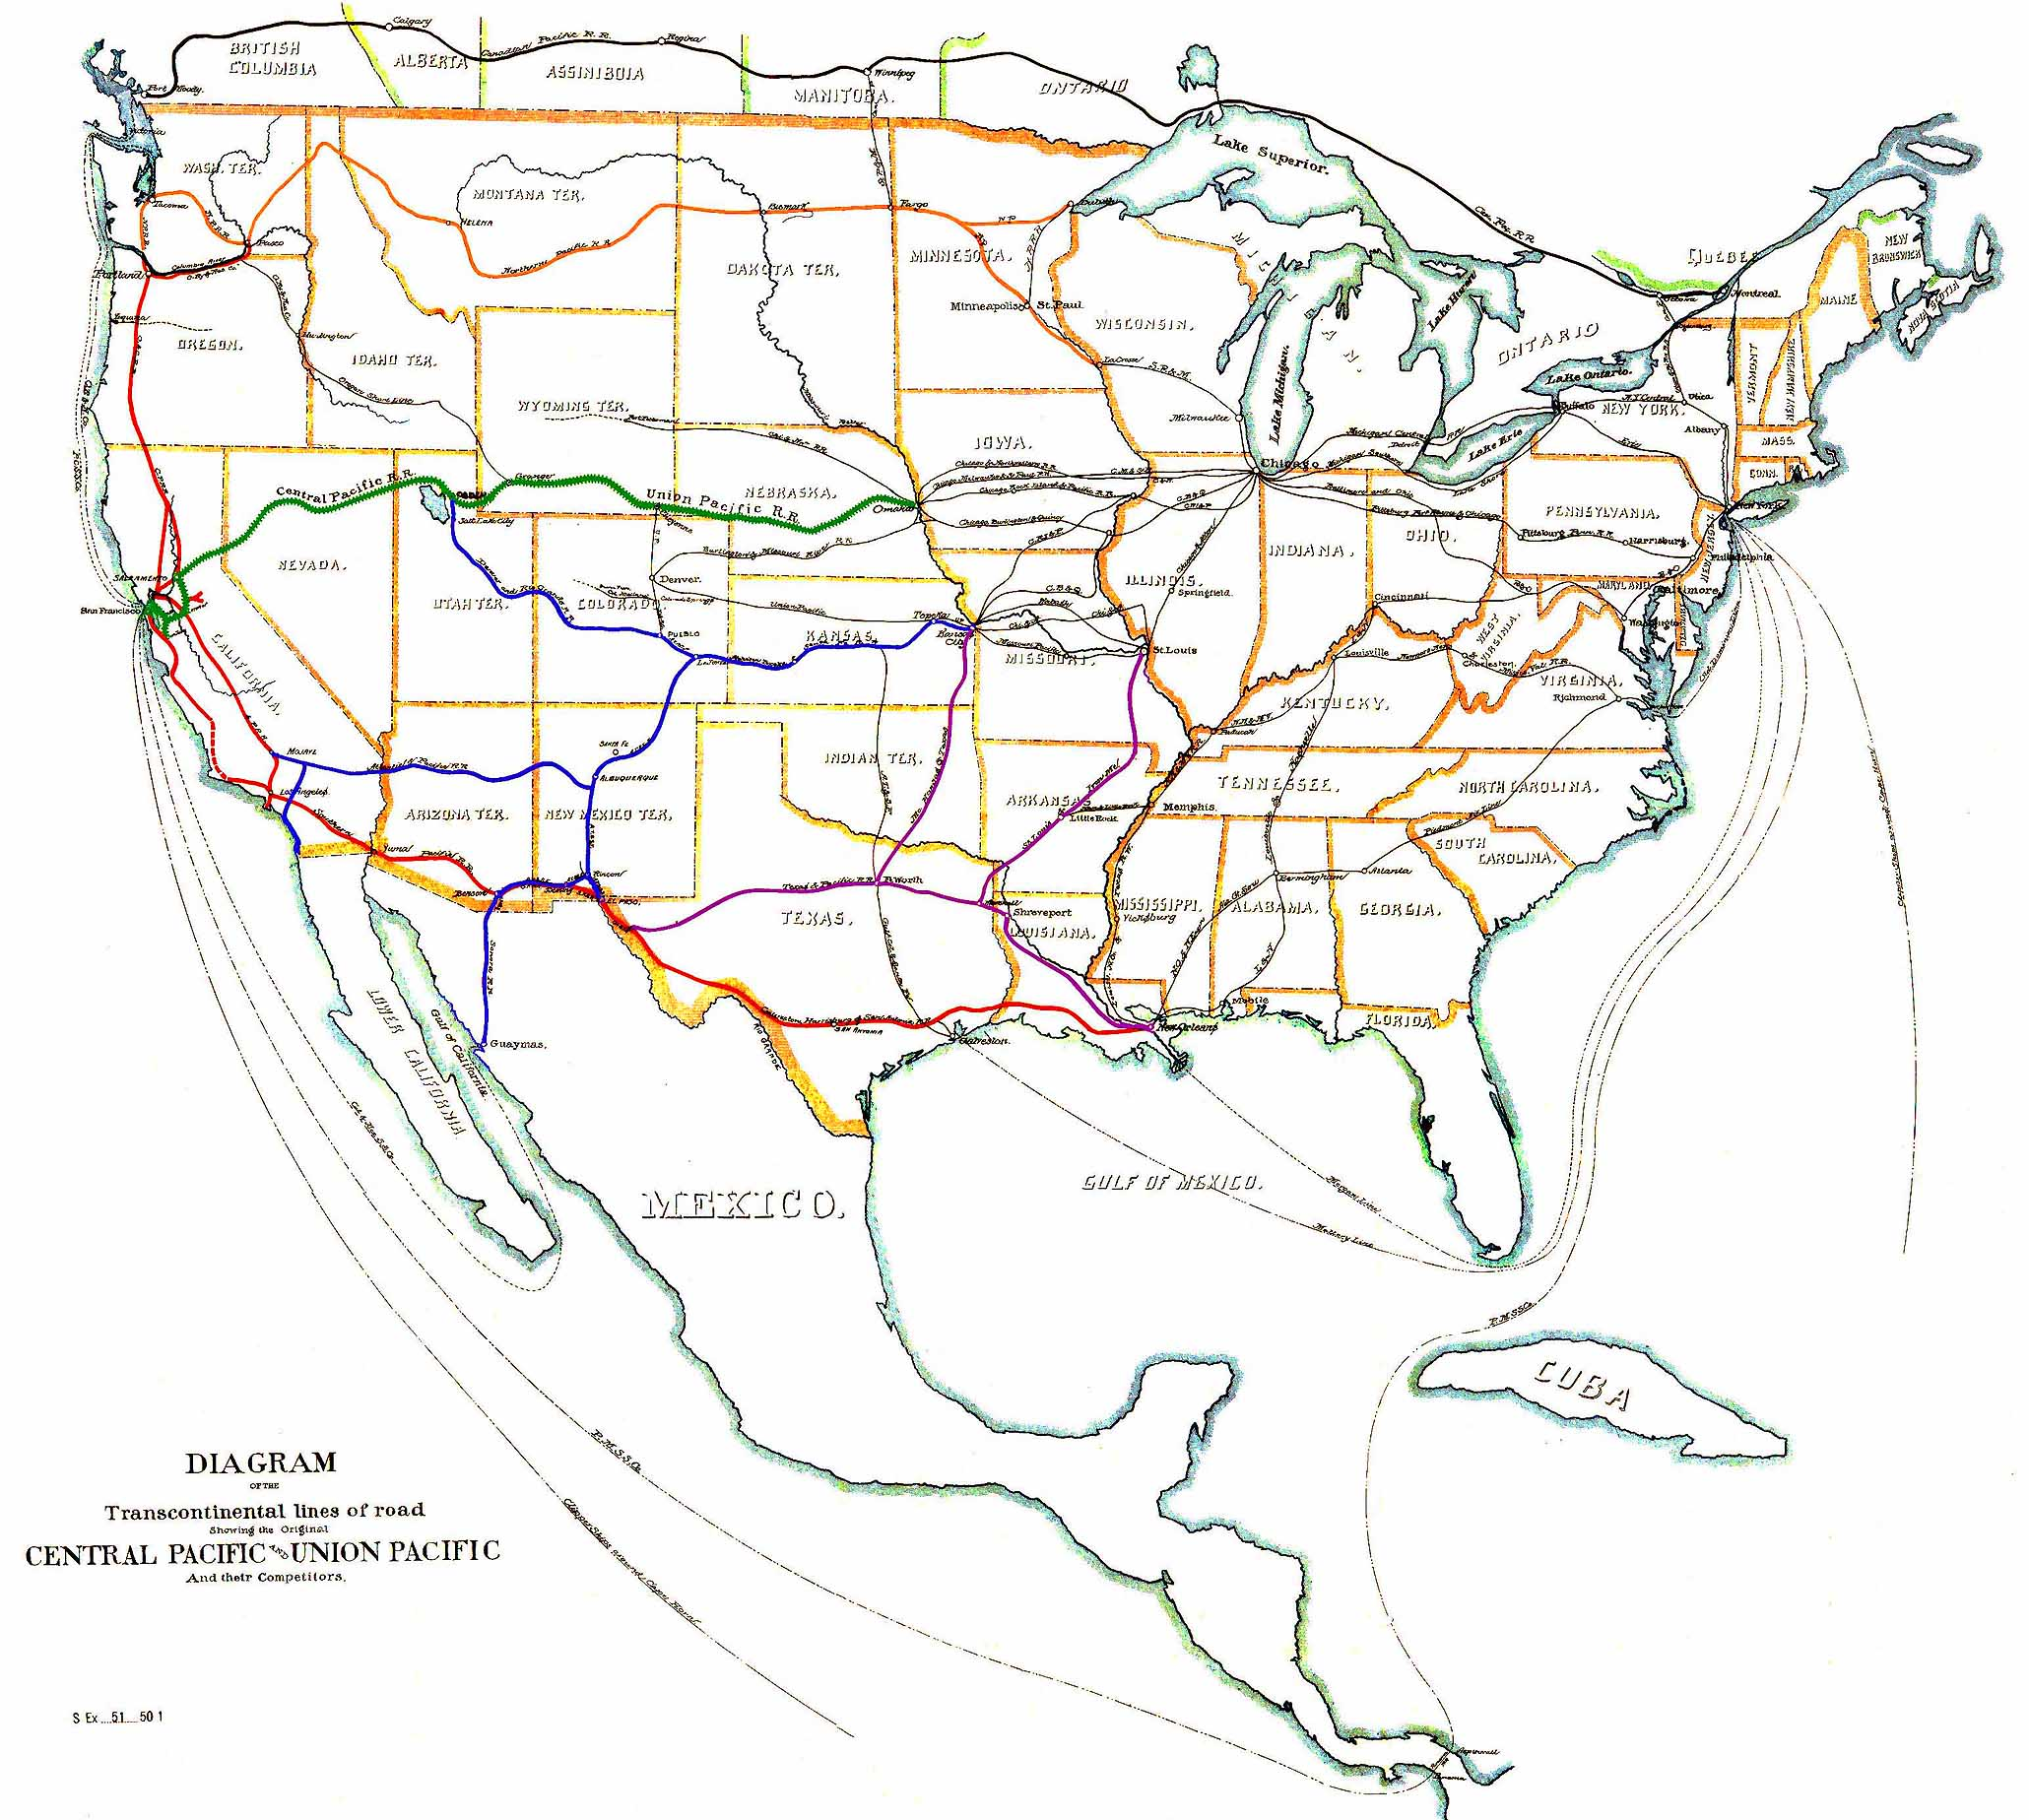 FileUS Transcontinental Railroads Jpg Wikimedia Commons - Us railroad map 2015